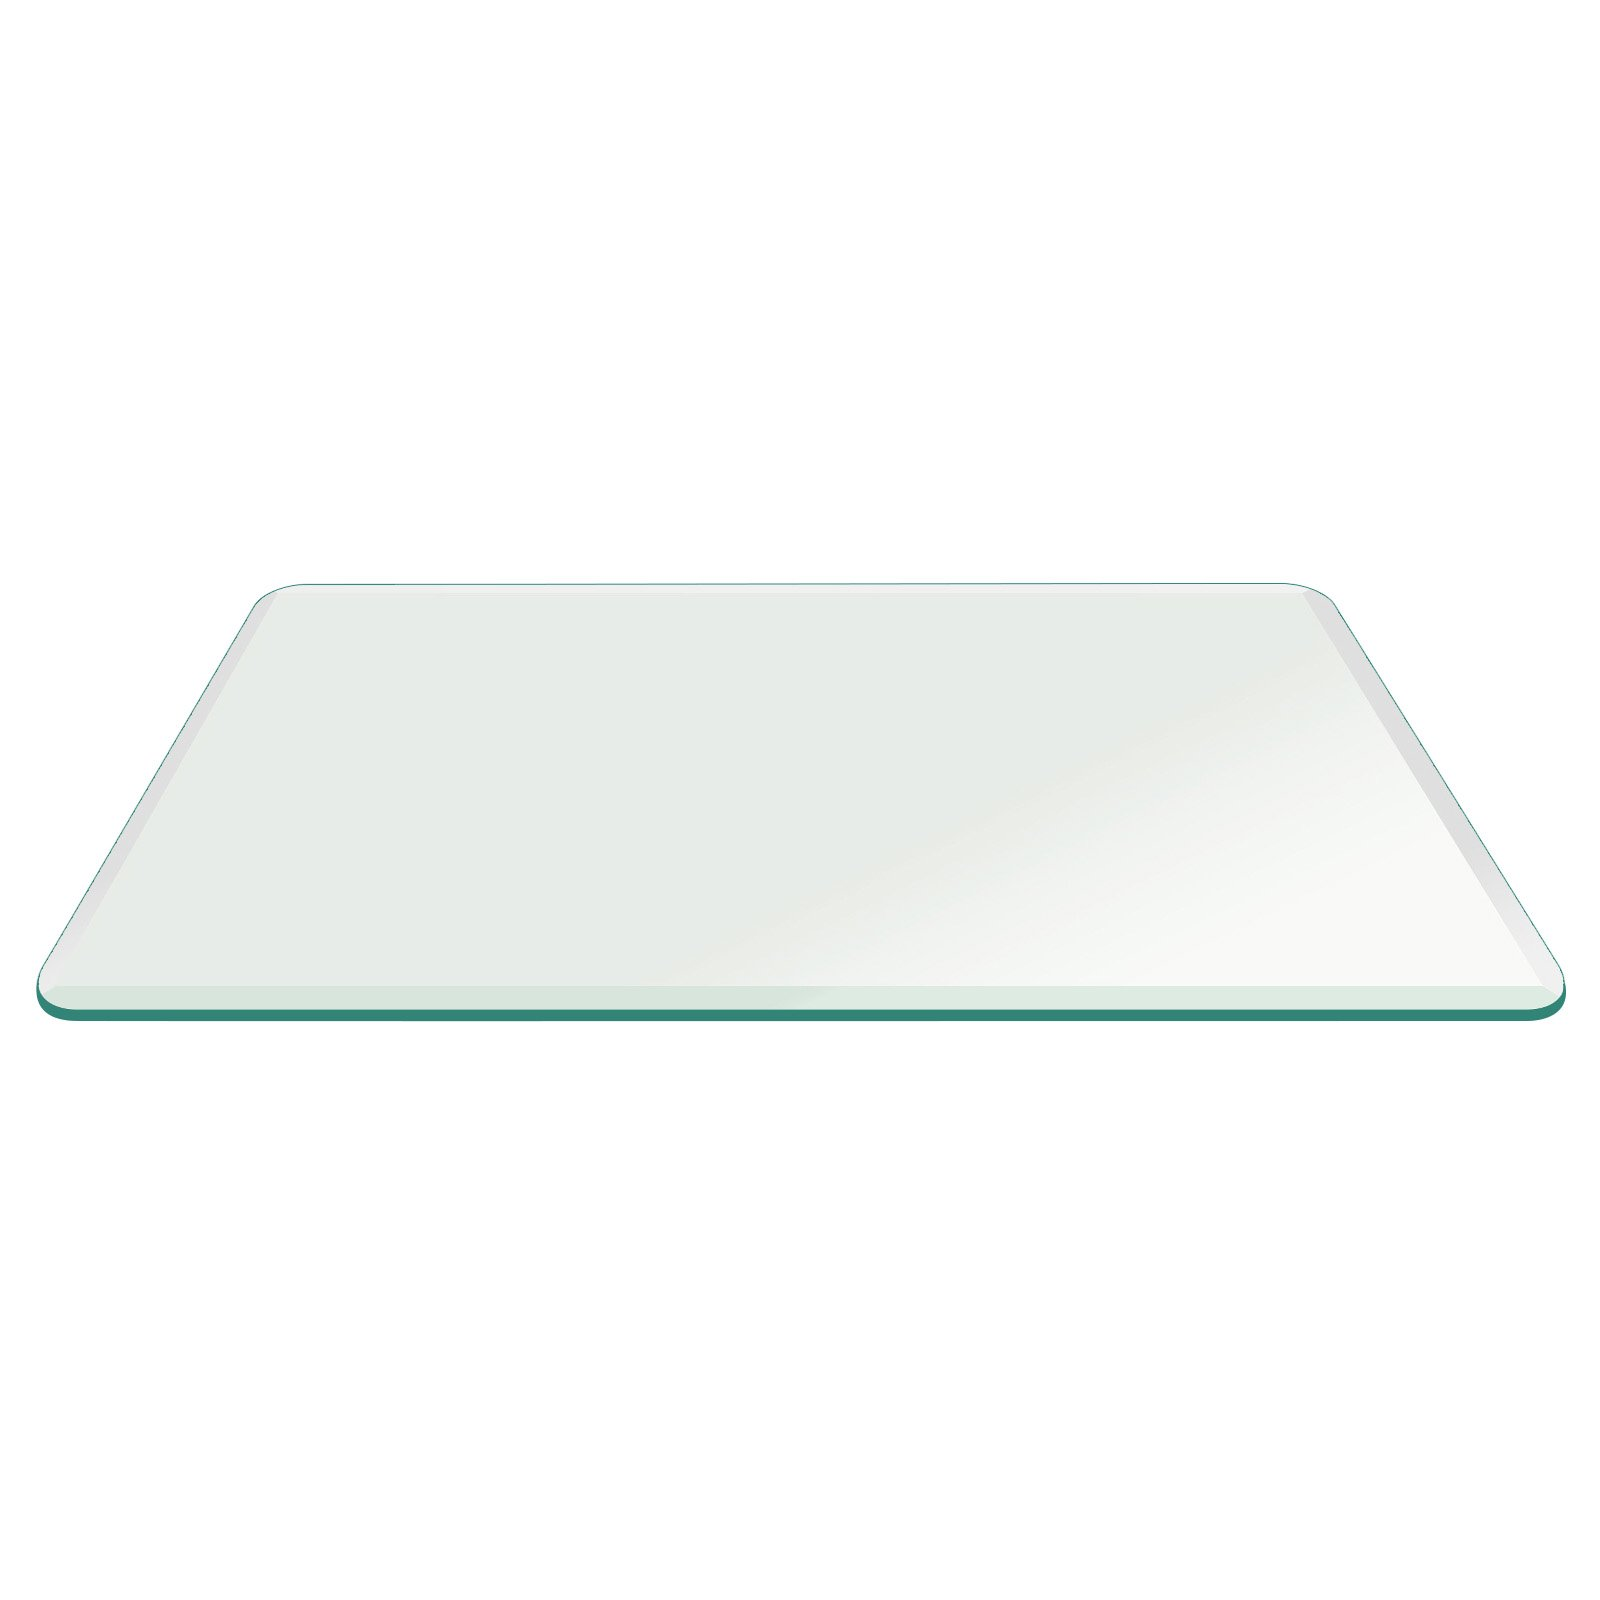 Fab Glass and Mirror 62'' Inch Round 1/2'' Thick Tempered Beveled Edge Polish Glass Table Top, Clear by Fab Glass and Mirror